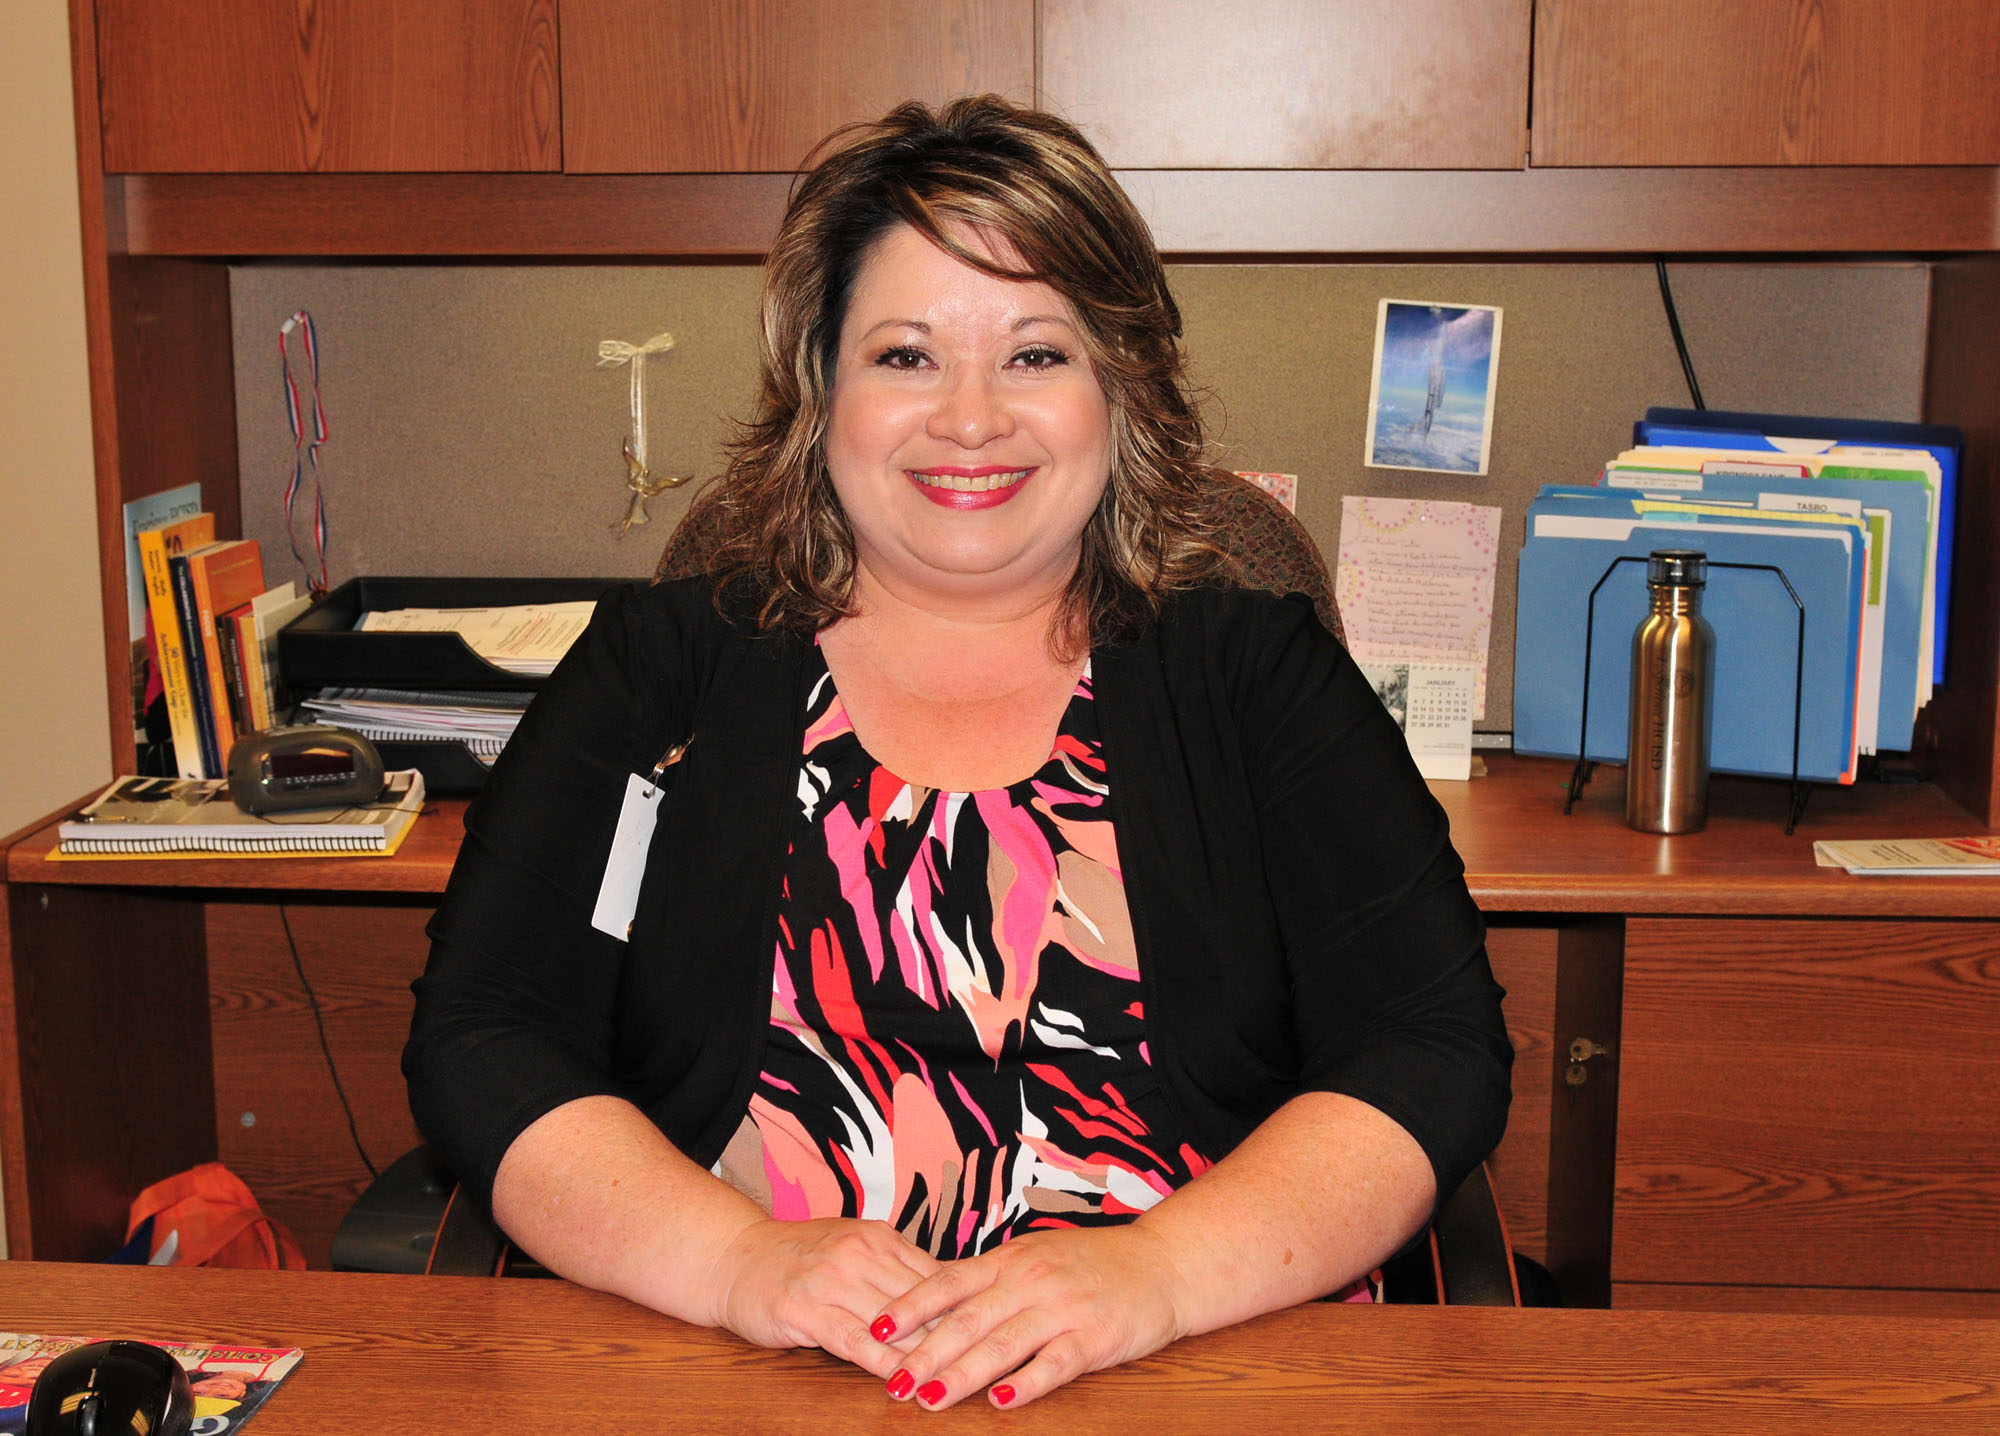 HCISD's Person of the Week: Cortez puts others first for HCISD